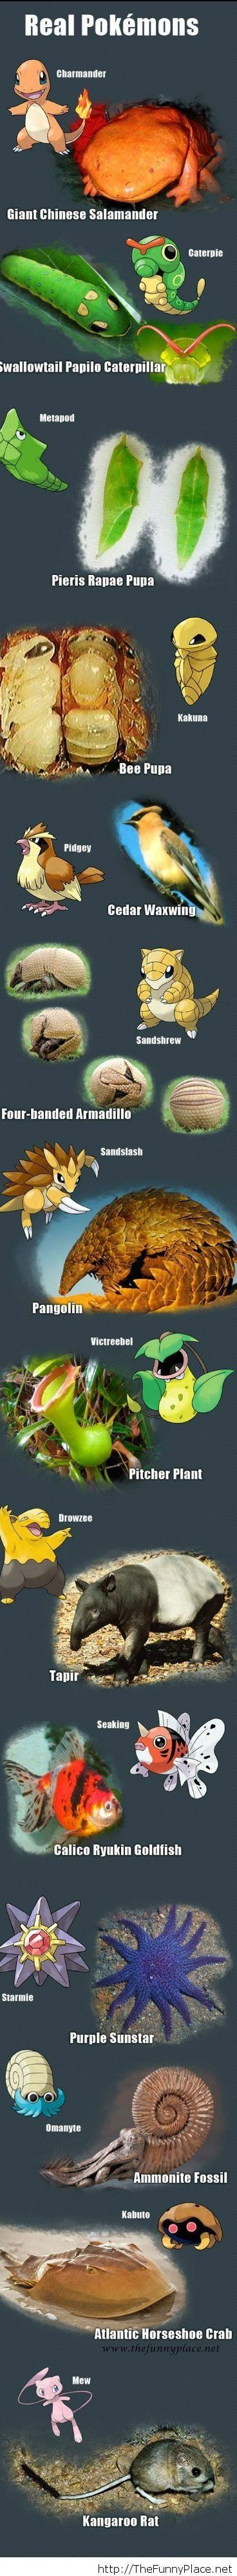 Pokemons in real life